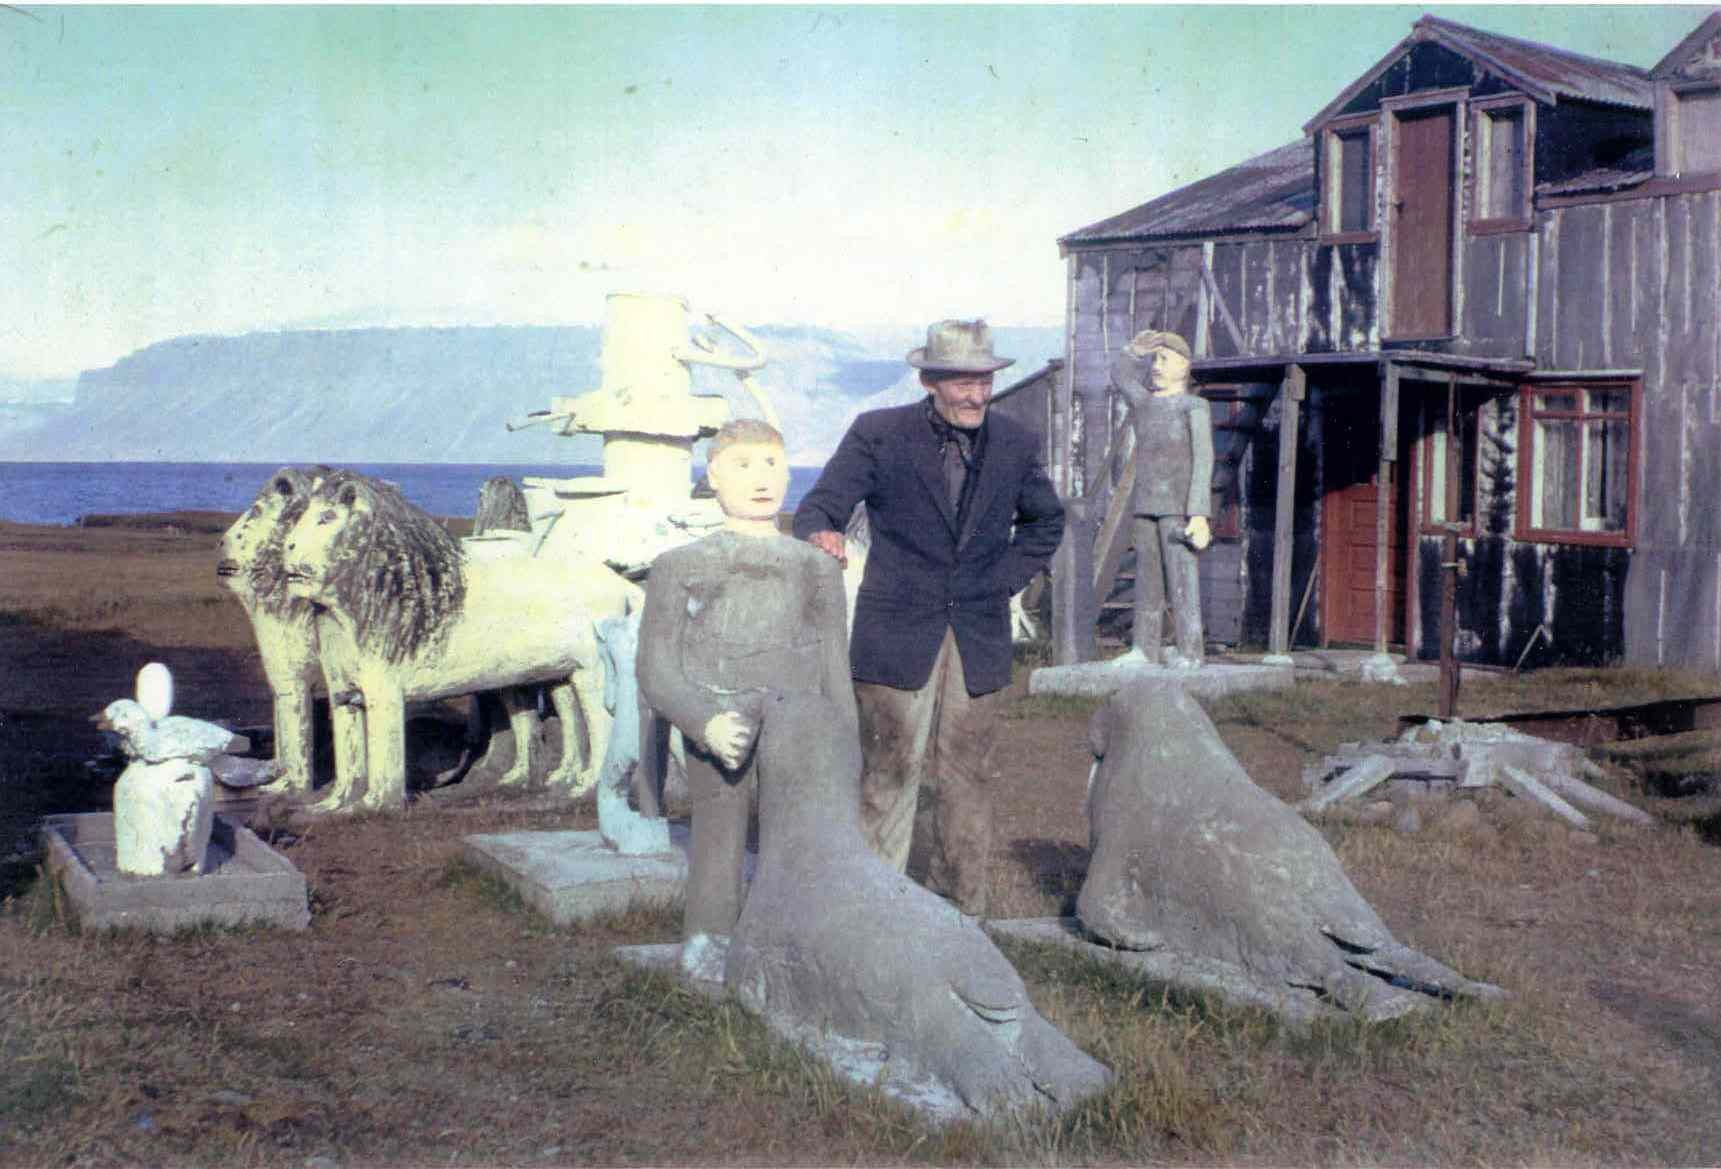 Samúel surrounded by his art works 1967.